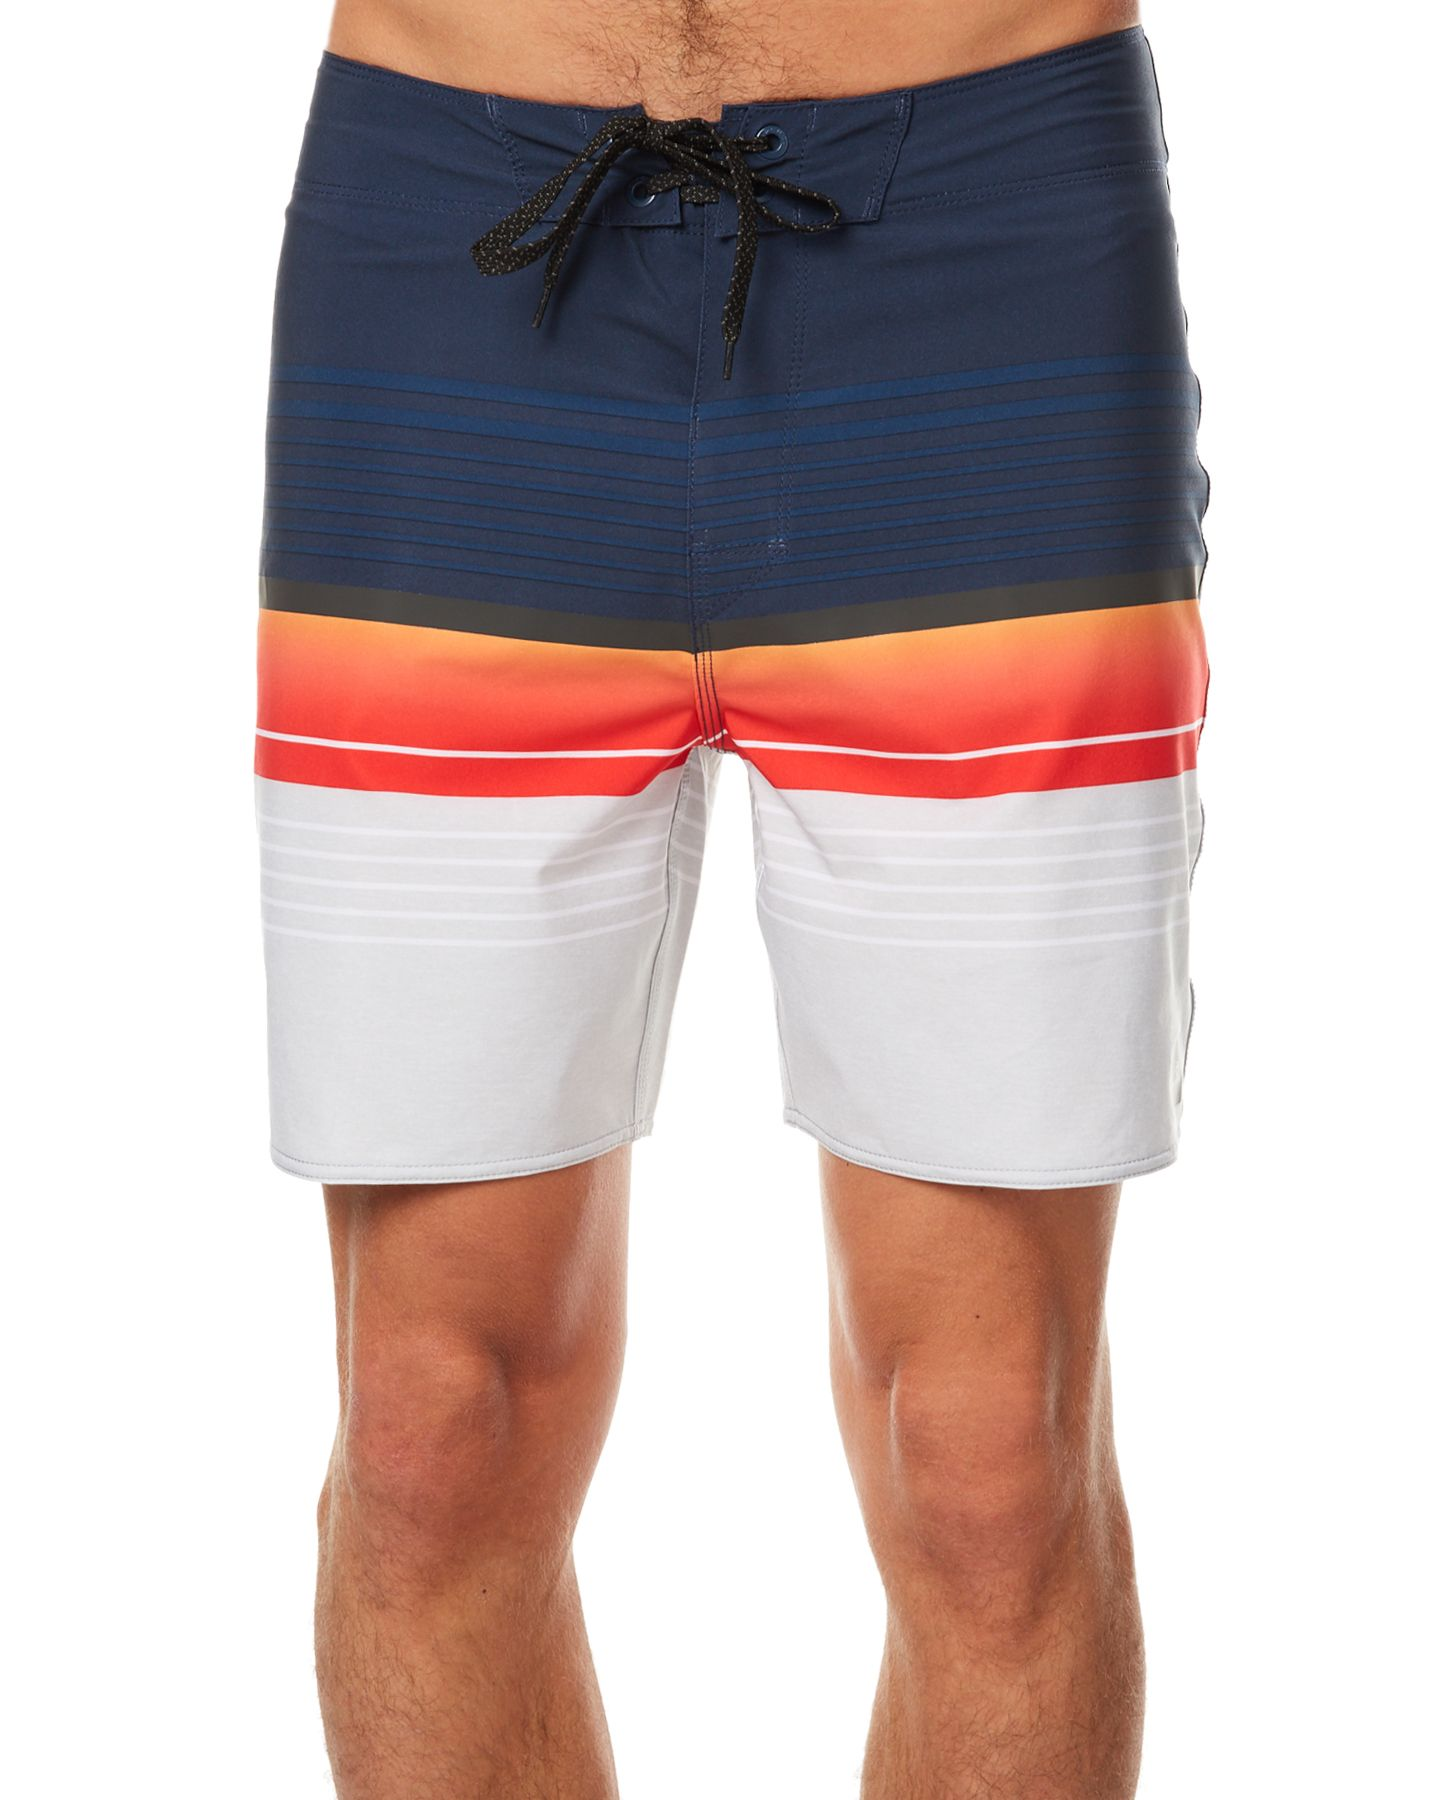 ccdd8581b1 Rip Curl Mirage Combined Mix 18 Mens Boardshort - Red | SurfStitch ...